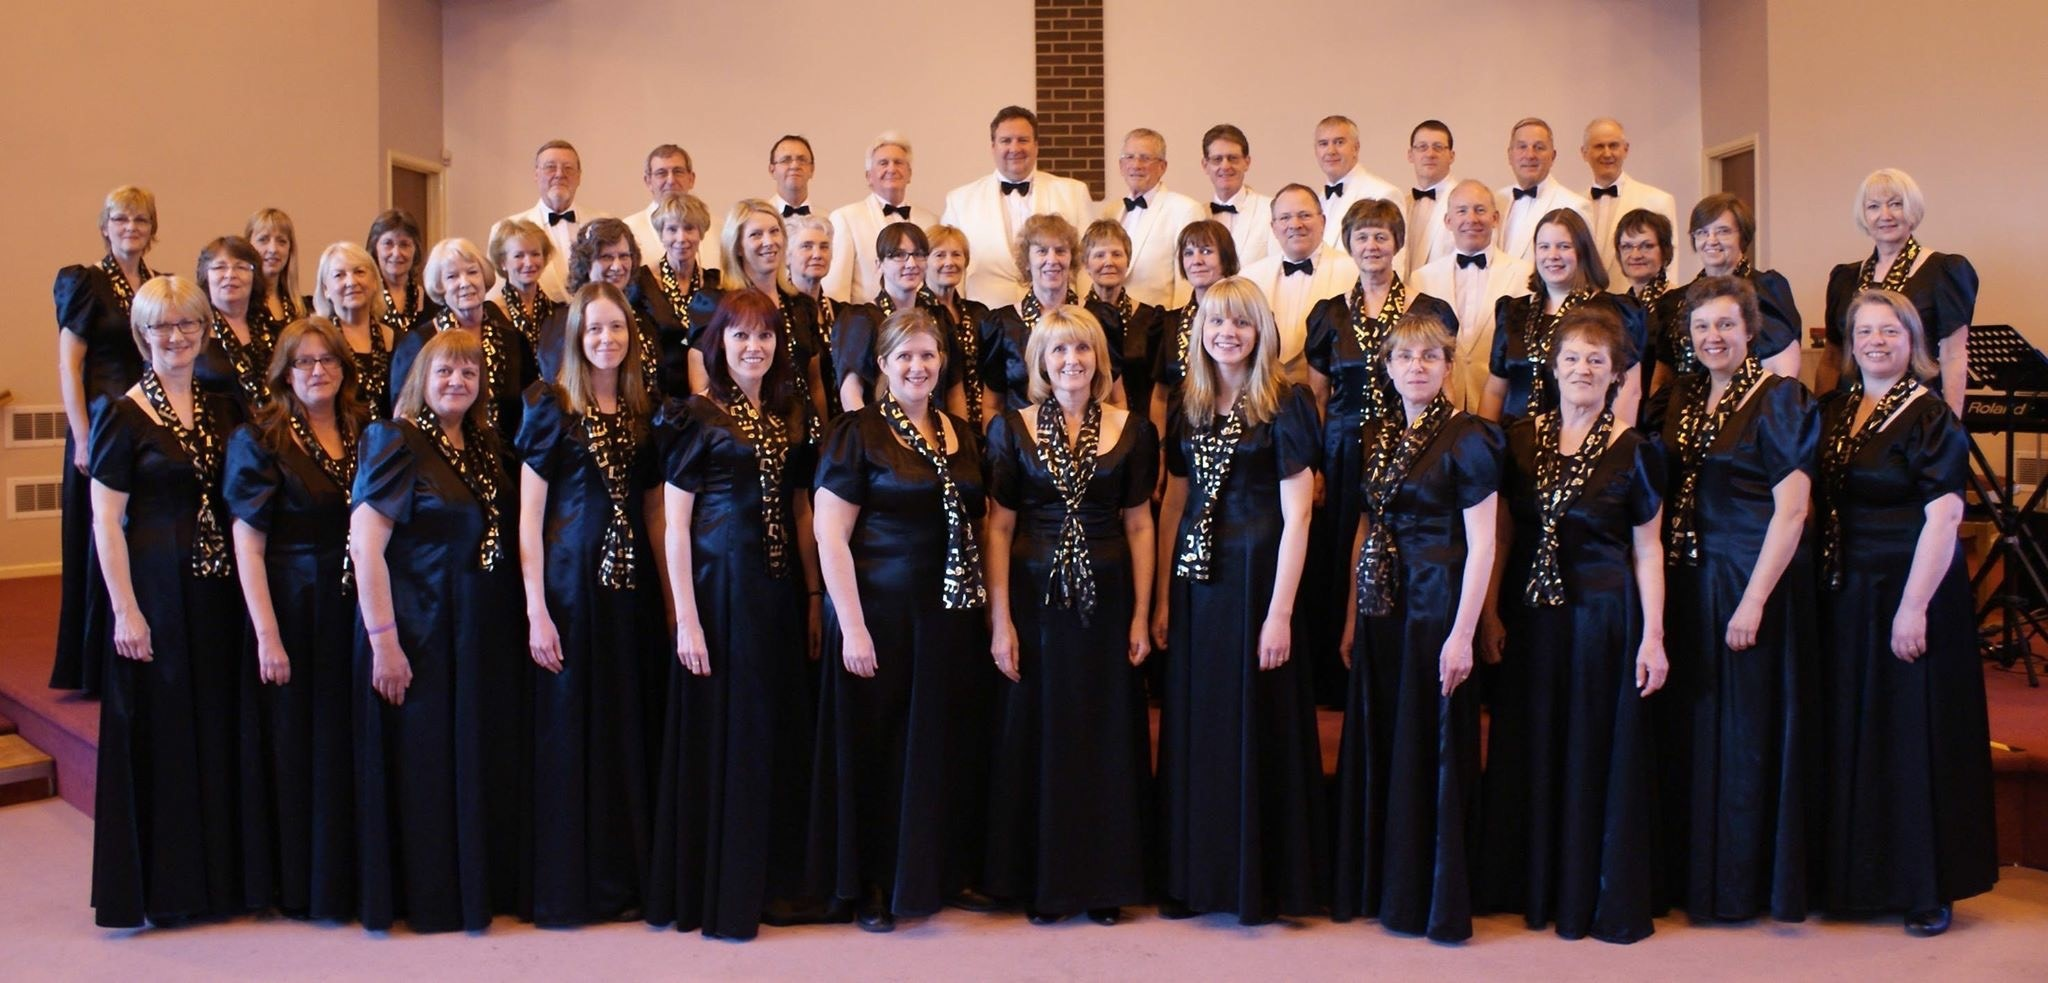 Of One Accord Choir In Shrewsbury Performs Karens Music